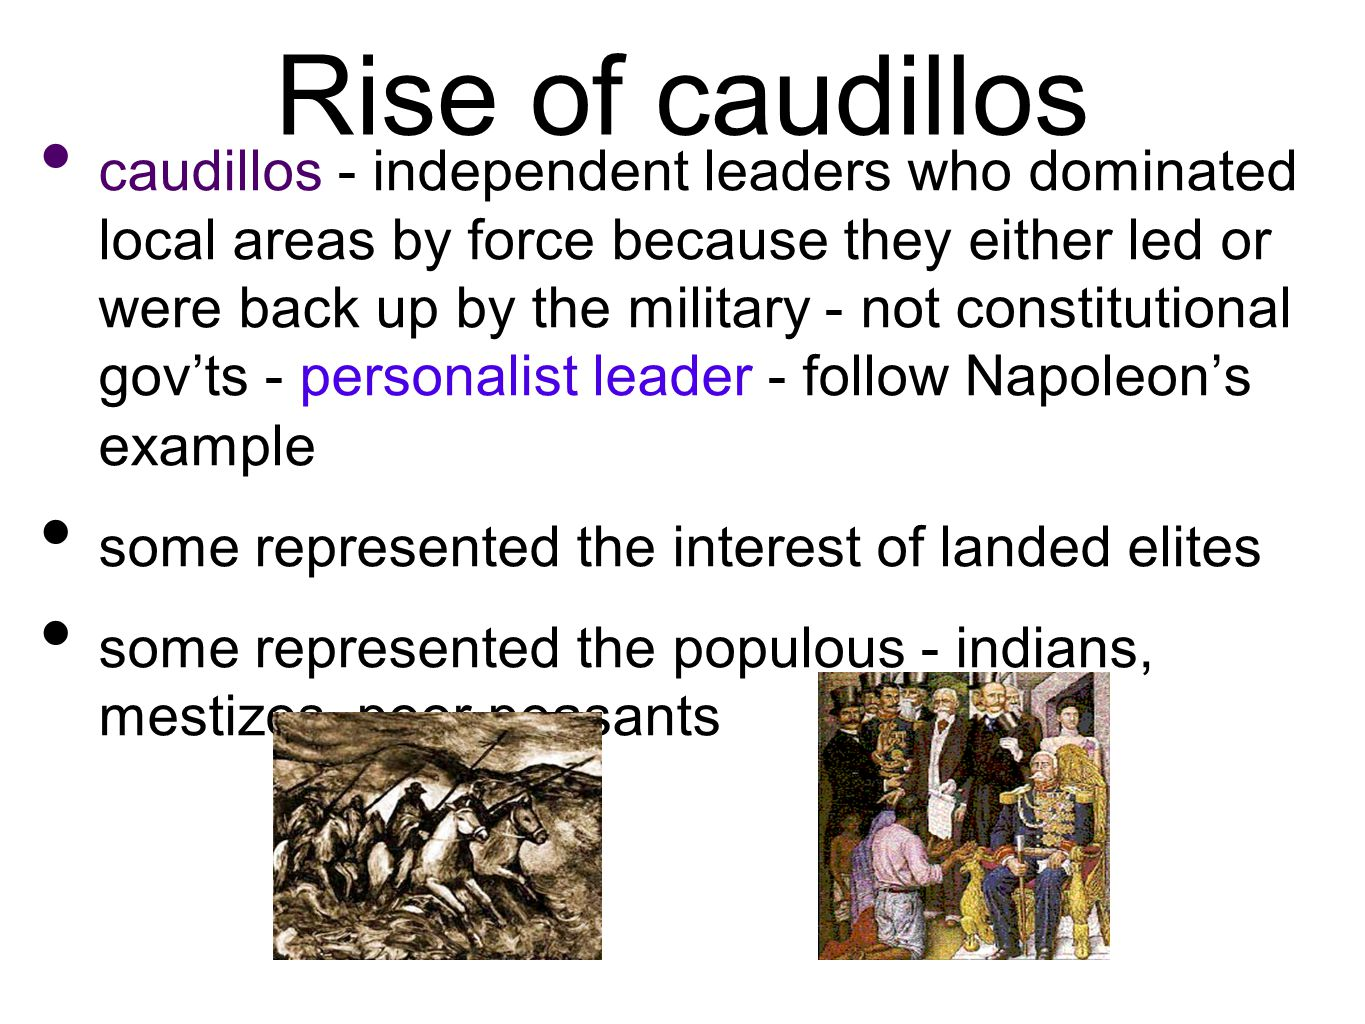 Rise of caudillos caudillos - independent leaders who dominated local areas by force because they either led or were back up by the military - not constitutional gov'ts - personalist leader - follow Napoleon's example some represented the interest of landed elites some represented the populous - indians, mestizos, poor peasants